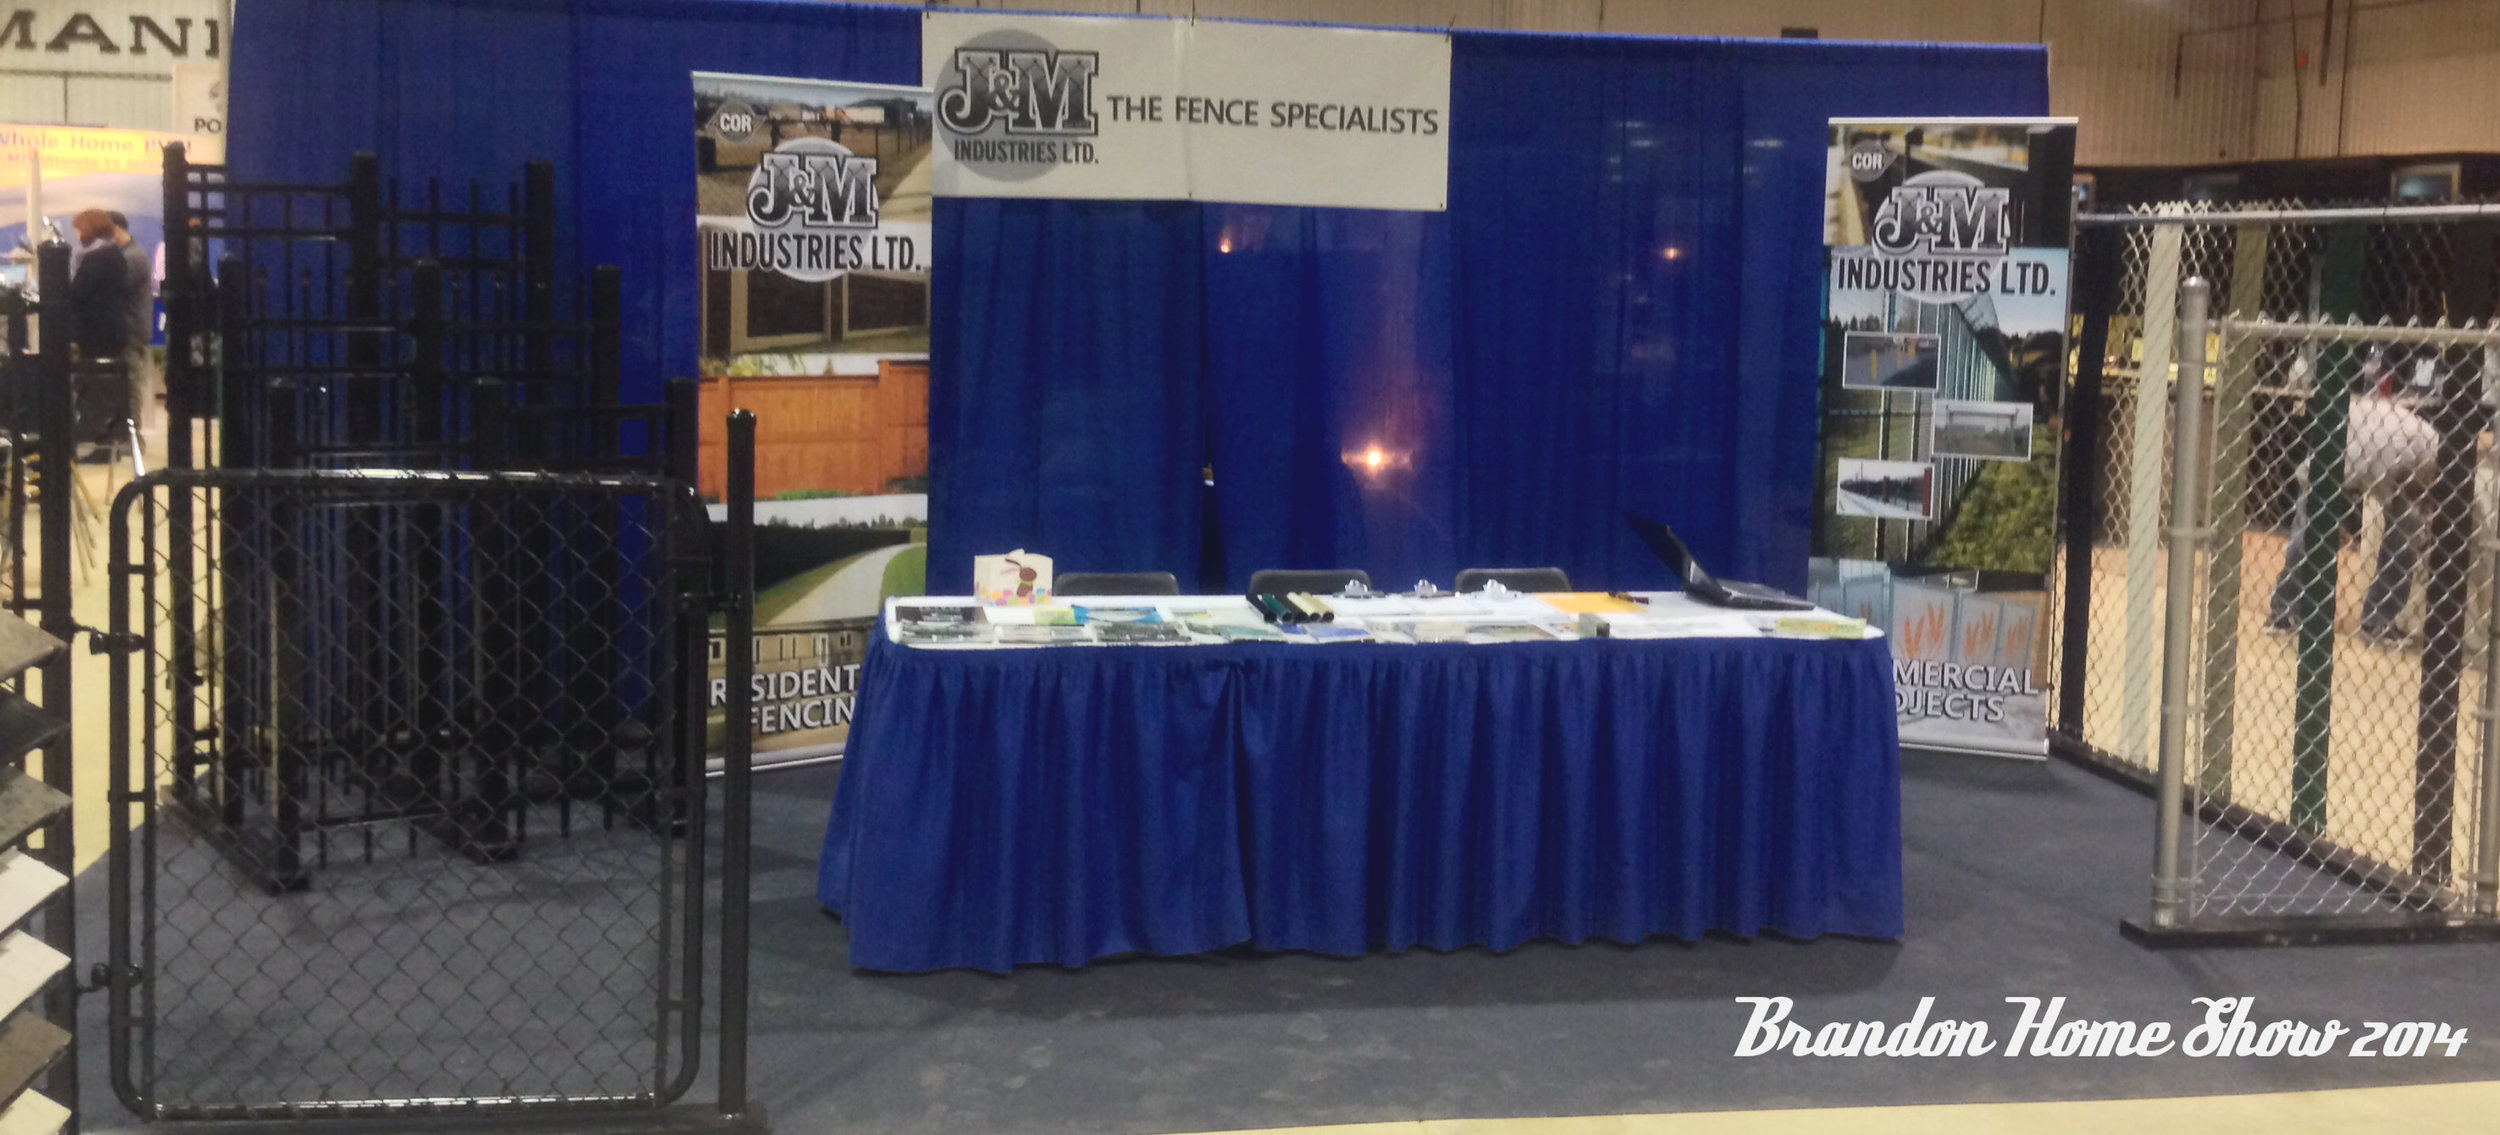 Brandon Home and Leisure Show 2014